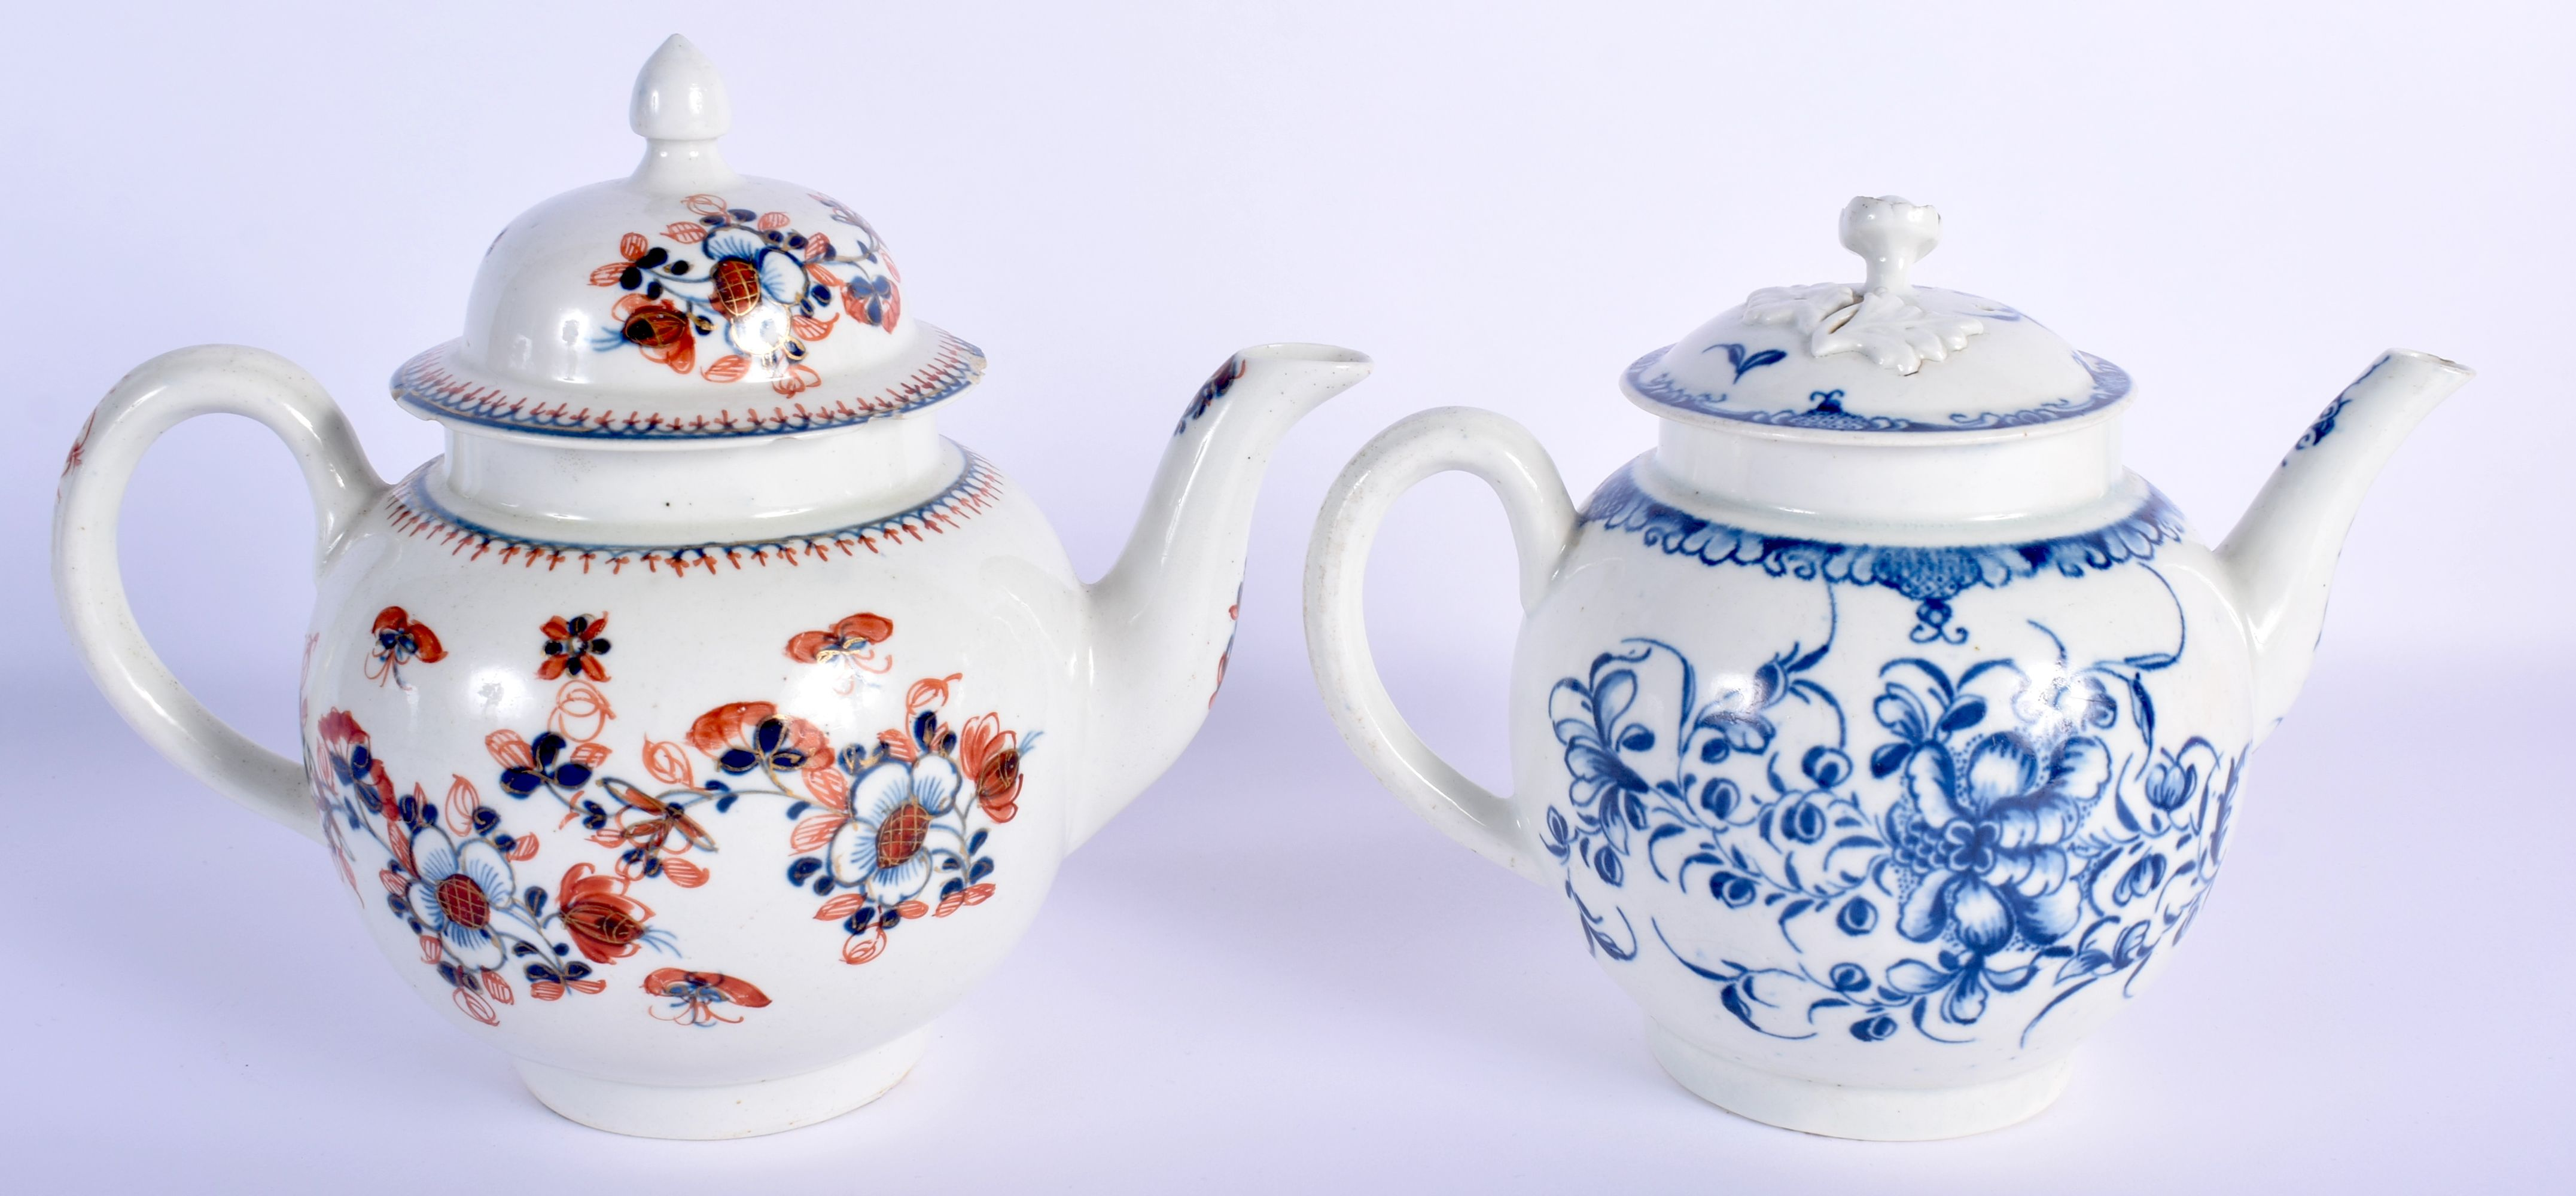 AN 18TH CENTURY WORCESTER MANSFIELD TEAPOT AND COVER together with a Liverpool overglazed teapot and - Image 2 of 4